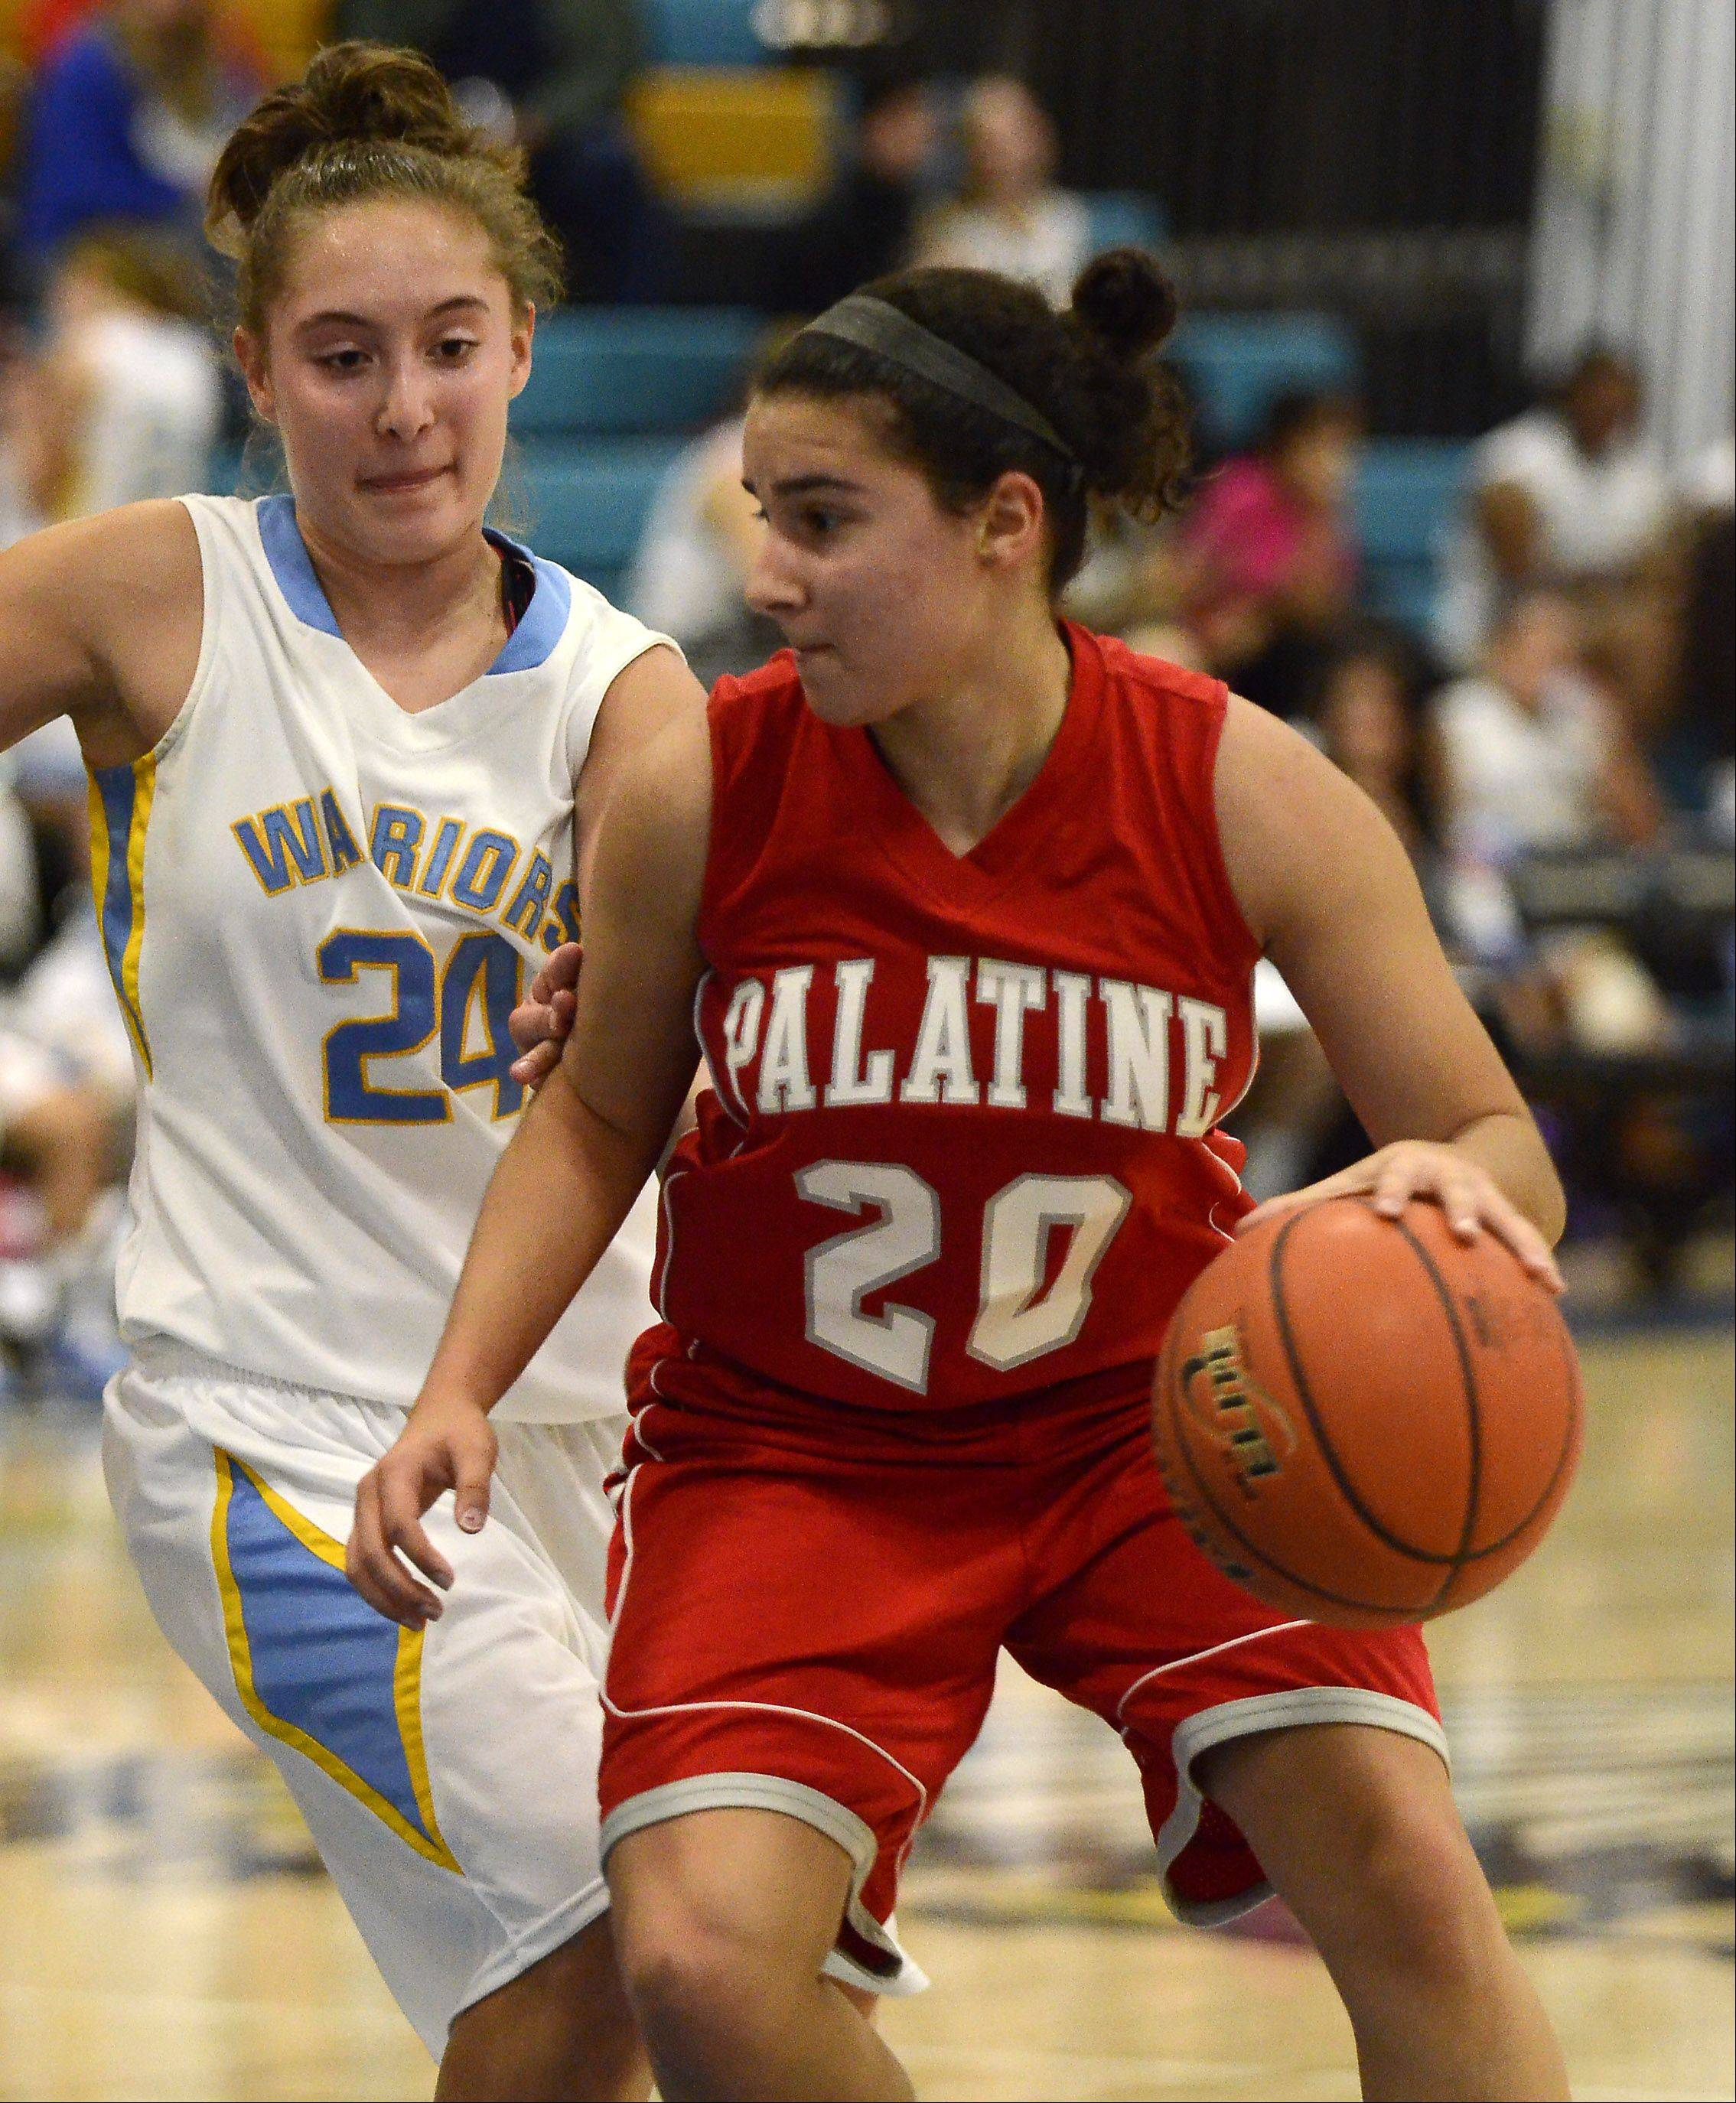 Palatine's Nia Pappas (20) works to get inside against Maine West's Alexia Prosperi (24) Monday night in Des Plaines. Pappas later hit the game-winning shot for the Pirates.